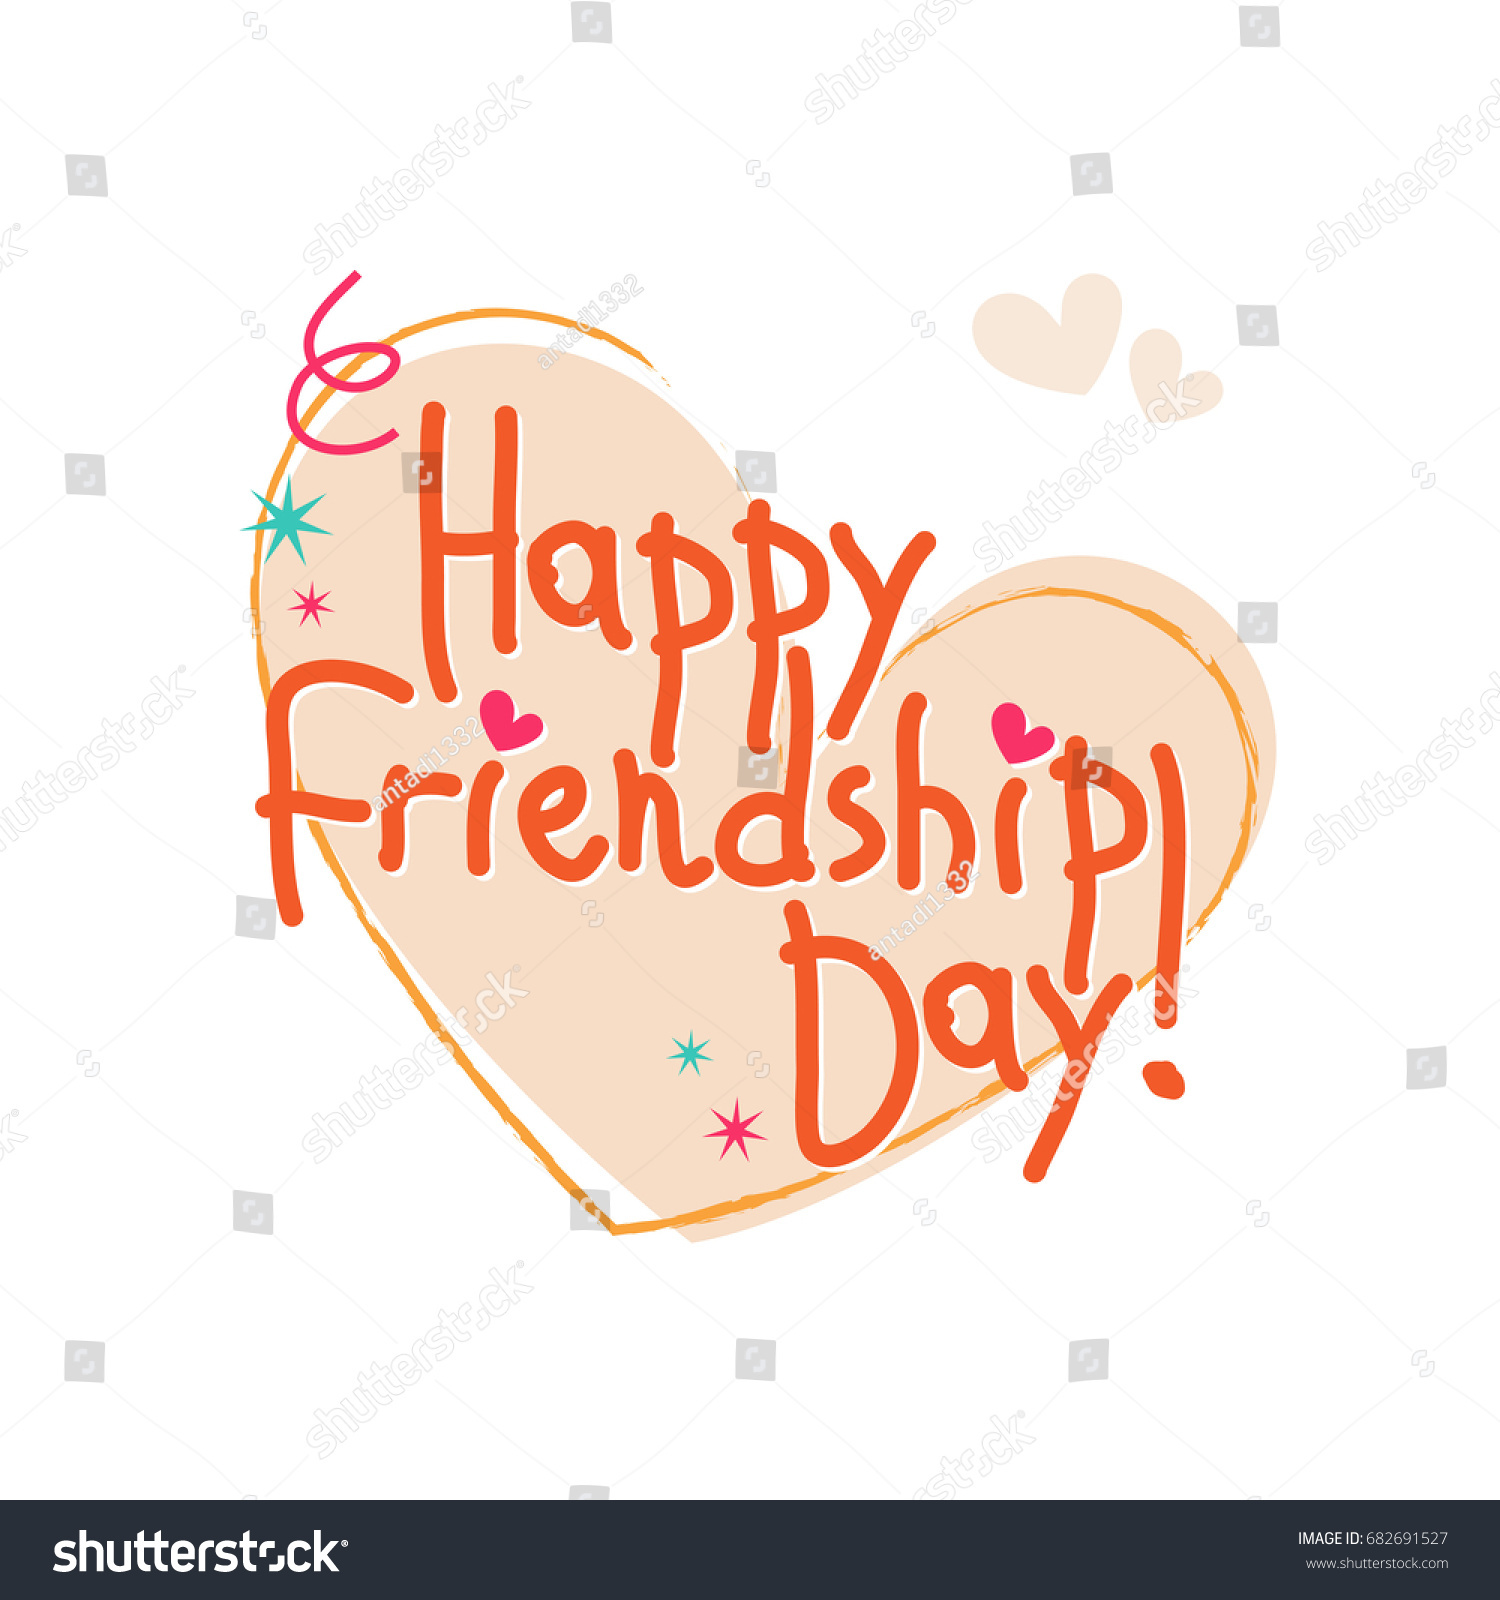 Happy Friendship Day Greeting Card Calligraphy Stock Vector Royalty